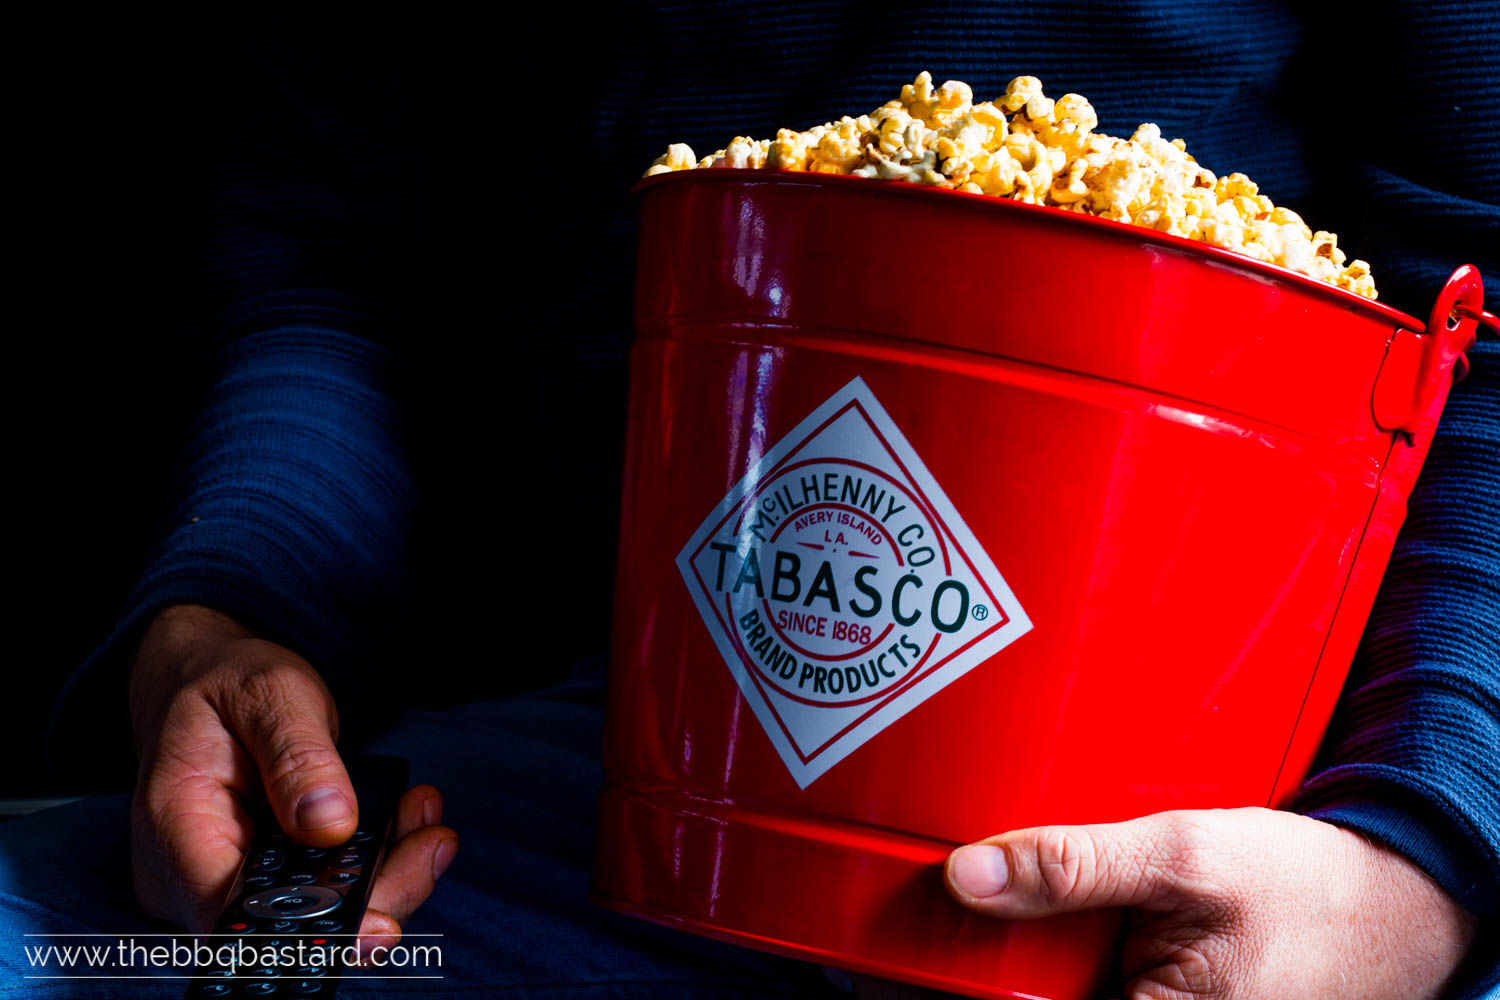 Spicy Popcorn for a hot movie night!